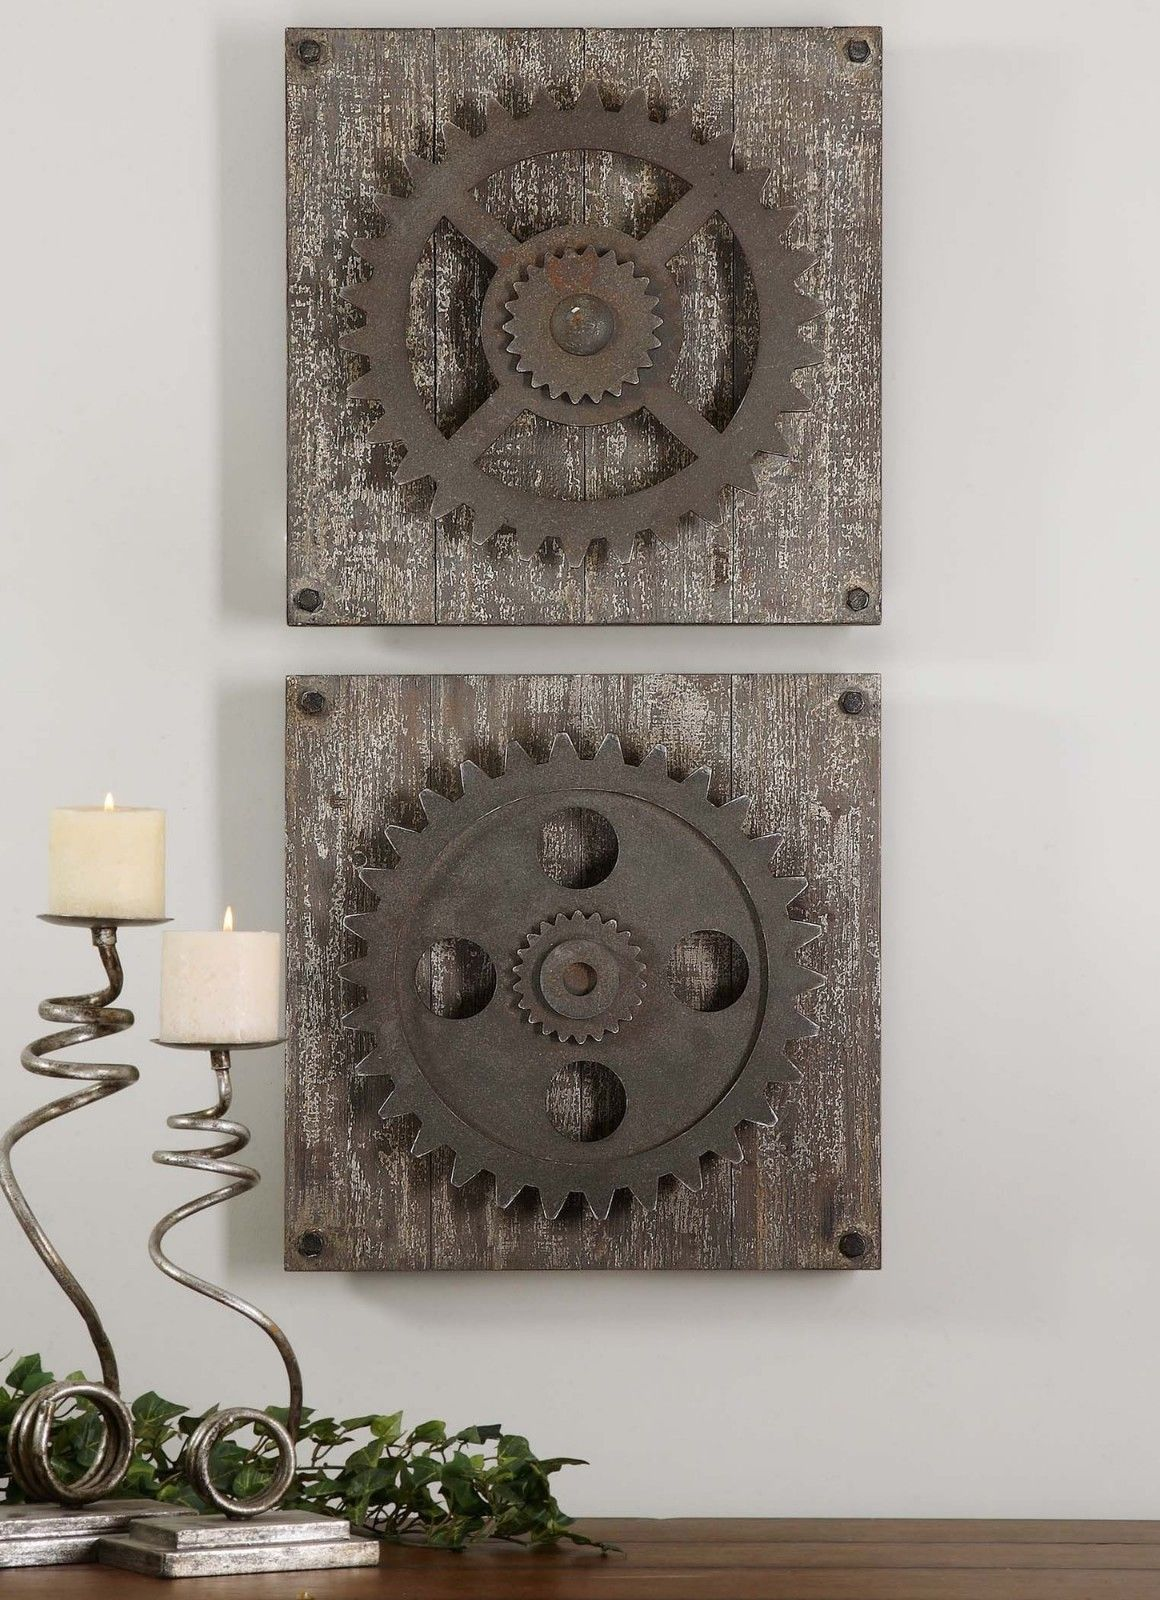 Gear Wall Decor urban industrial loft steampunk decor rusty gears cogs 3d wall art